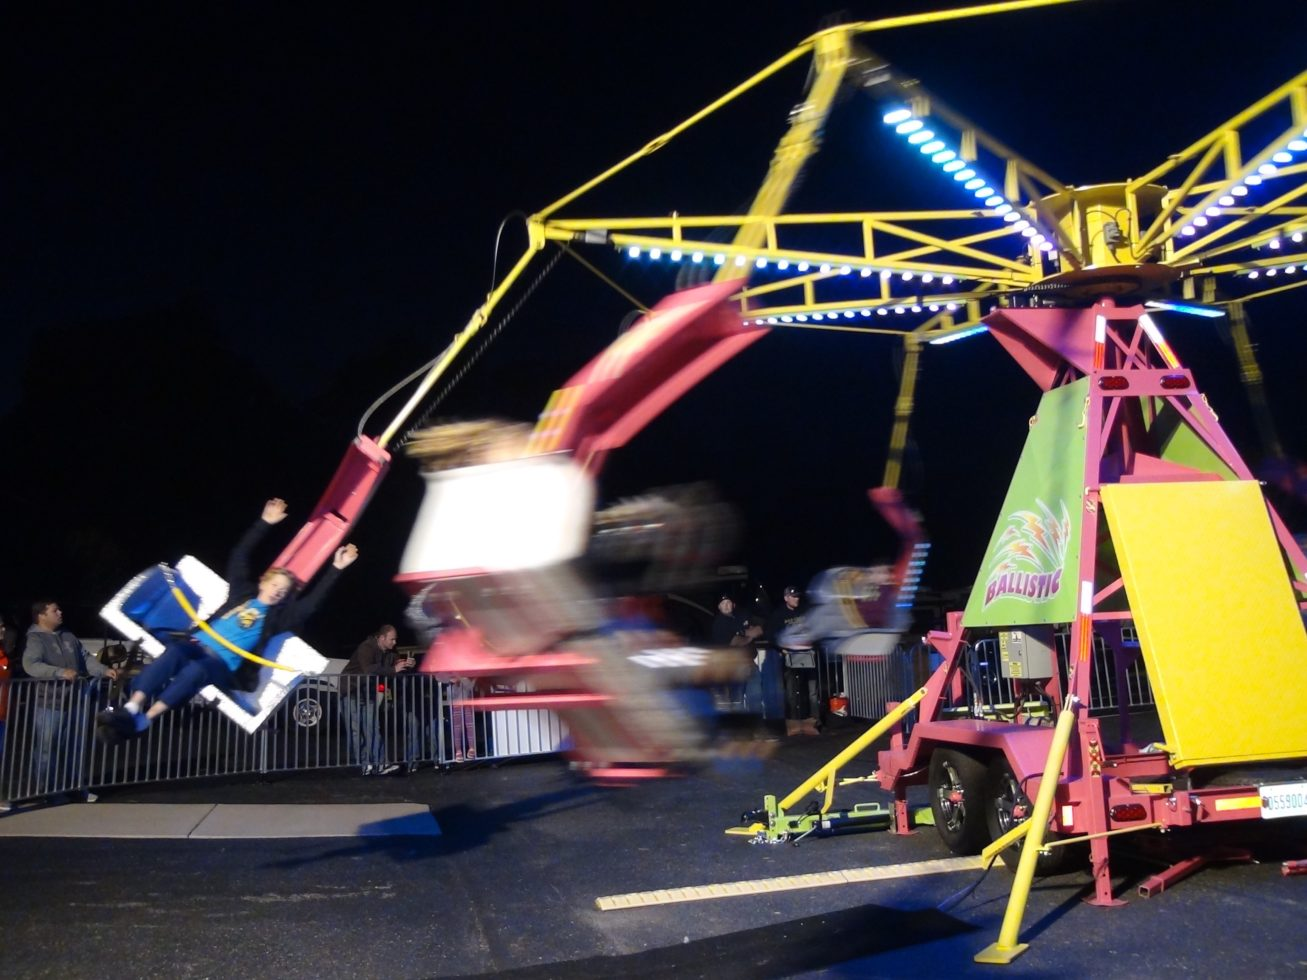 Ballistic Ride in Motion with riders at night